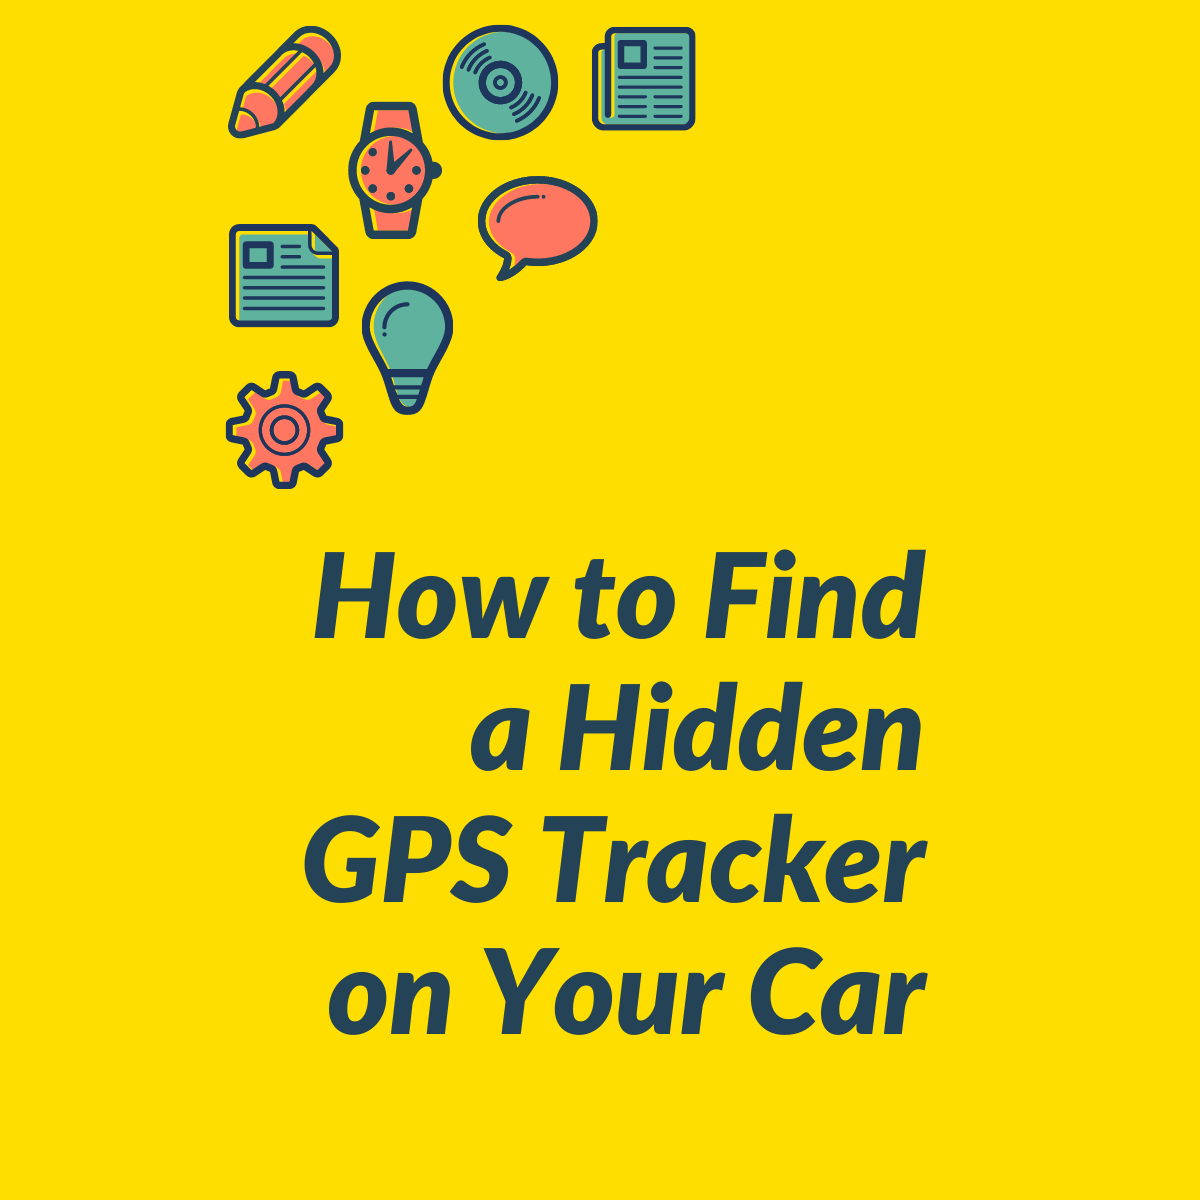 How to Find a Hidden GPS Tracker on Your Car